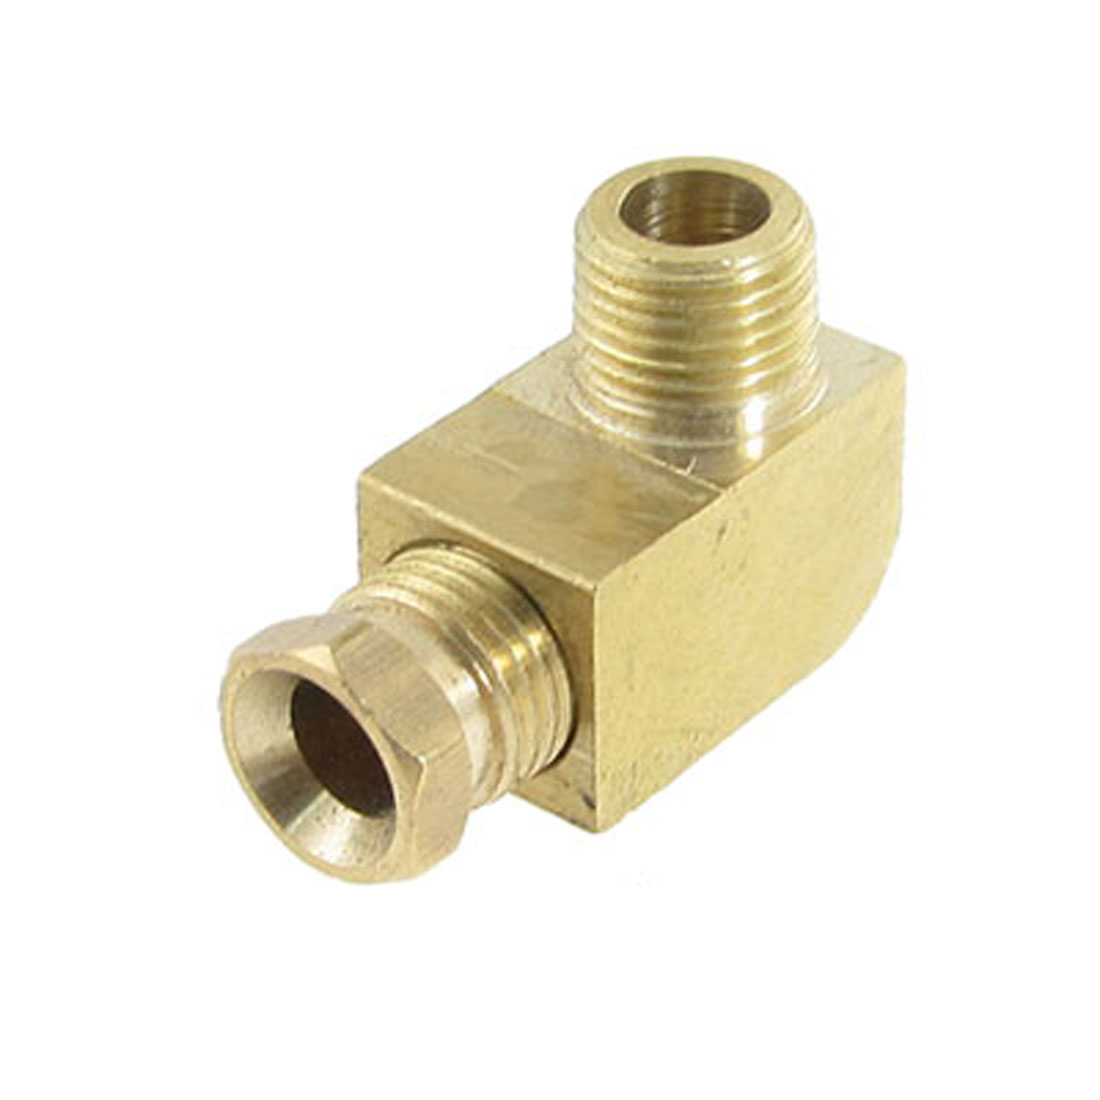 "15/64"" Brass Ferrule Compression End 3/8"" Male Thread Elbow Connector"